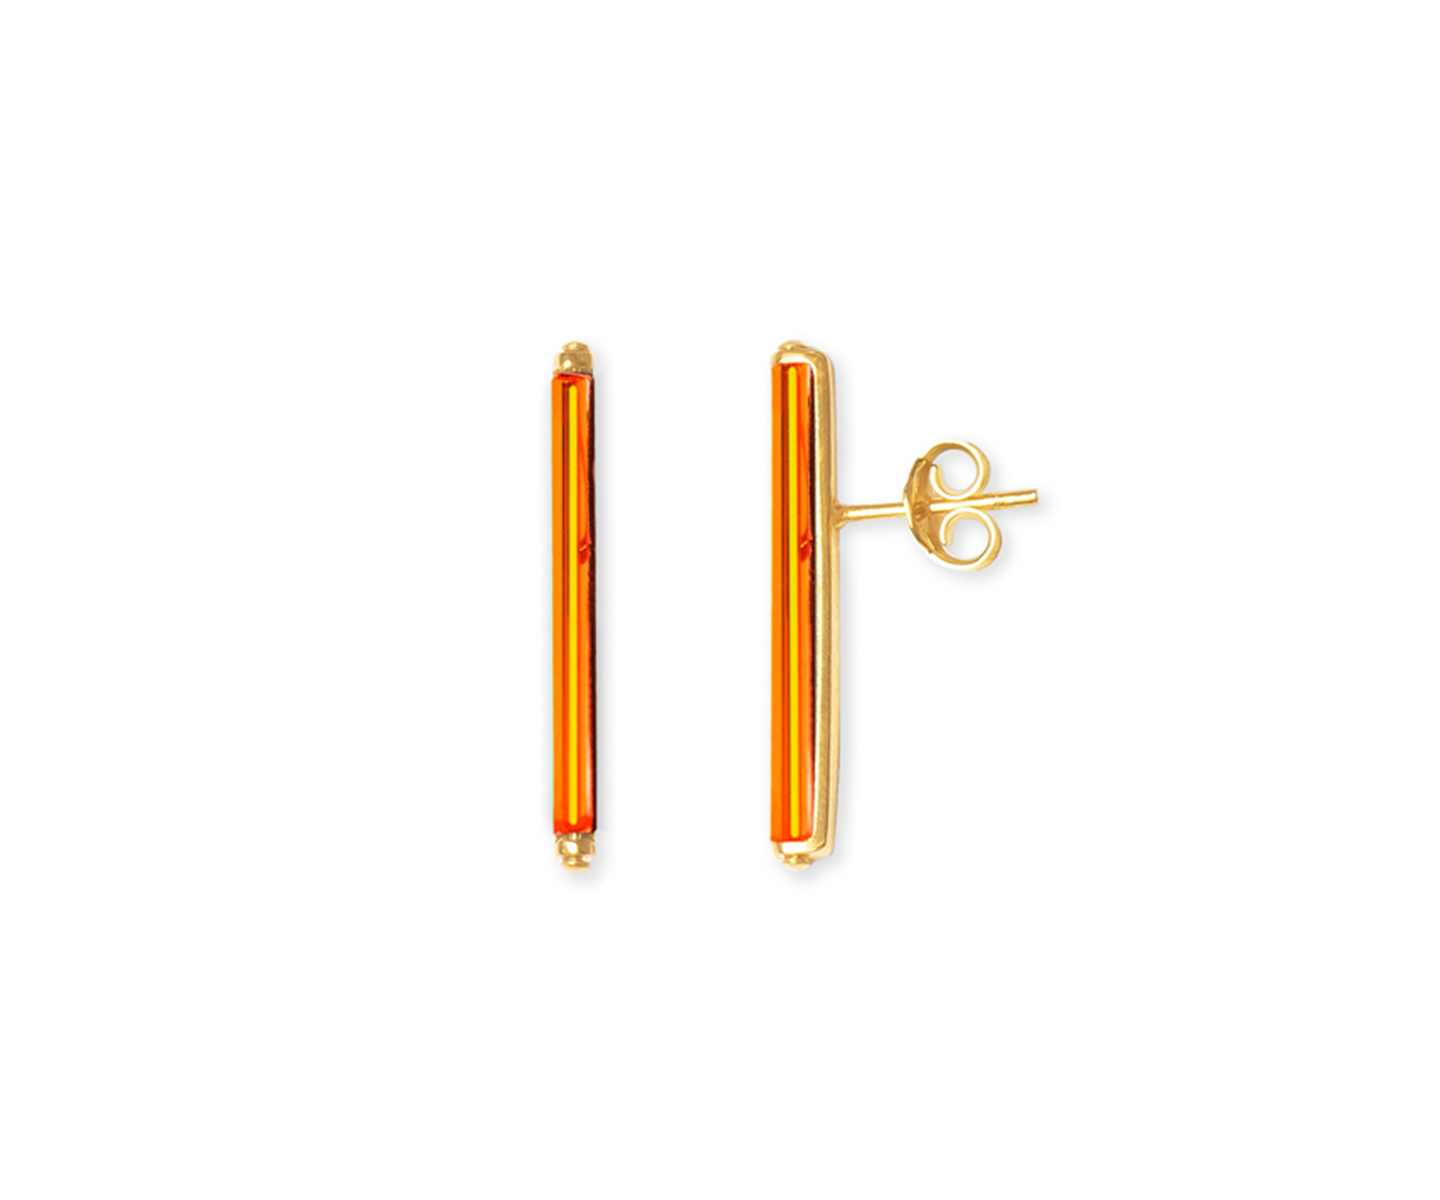 Bar minimalist earrings set with neon orange vintage glass